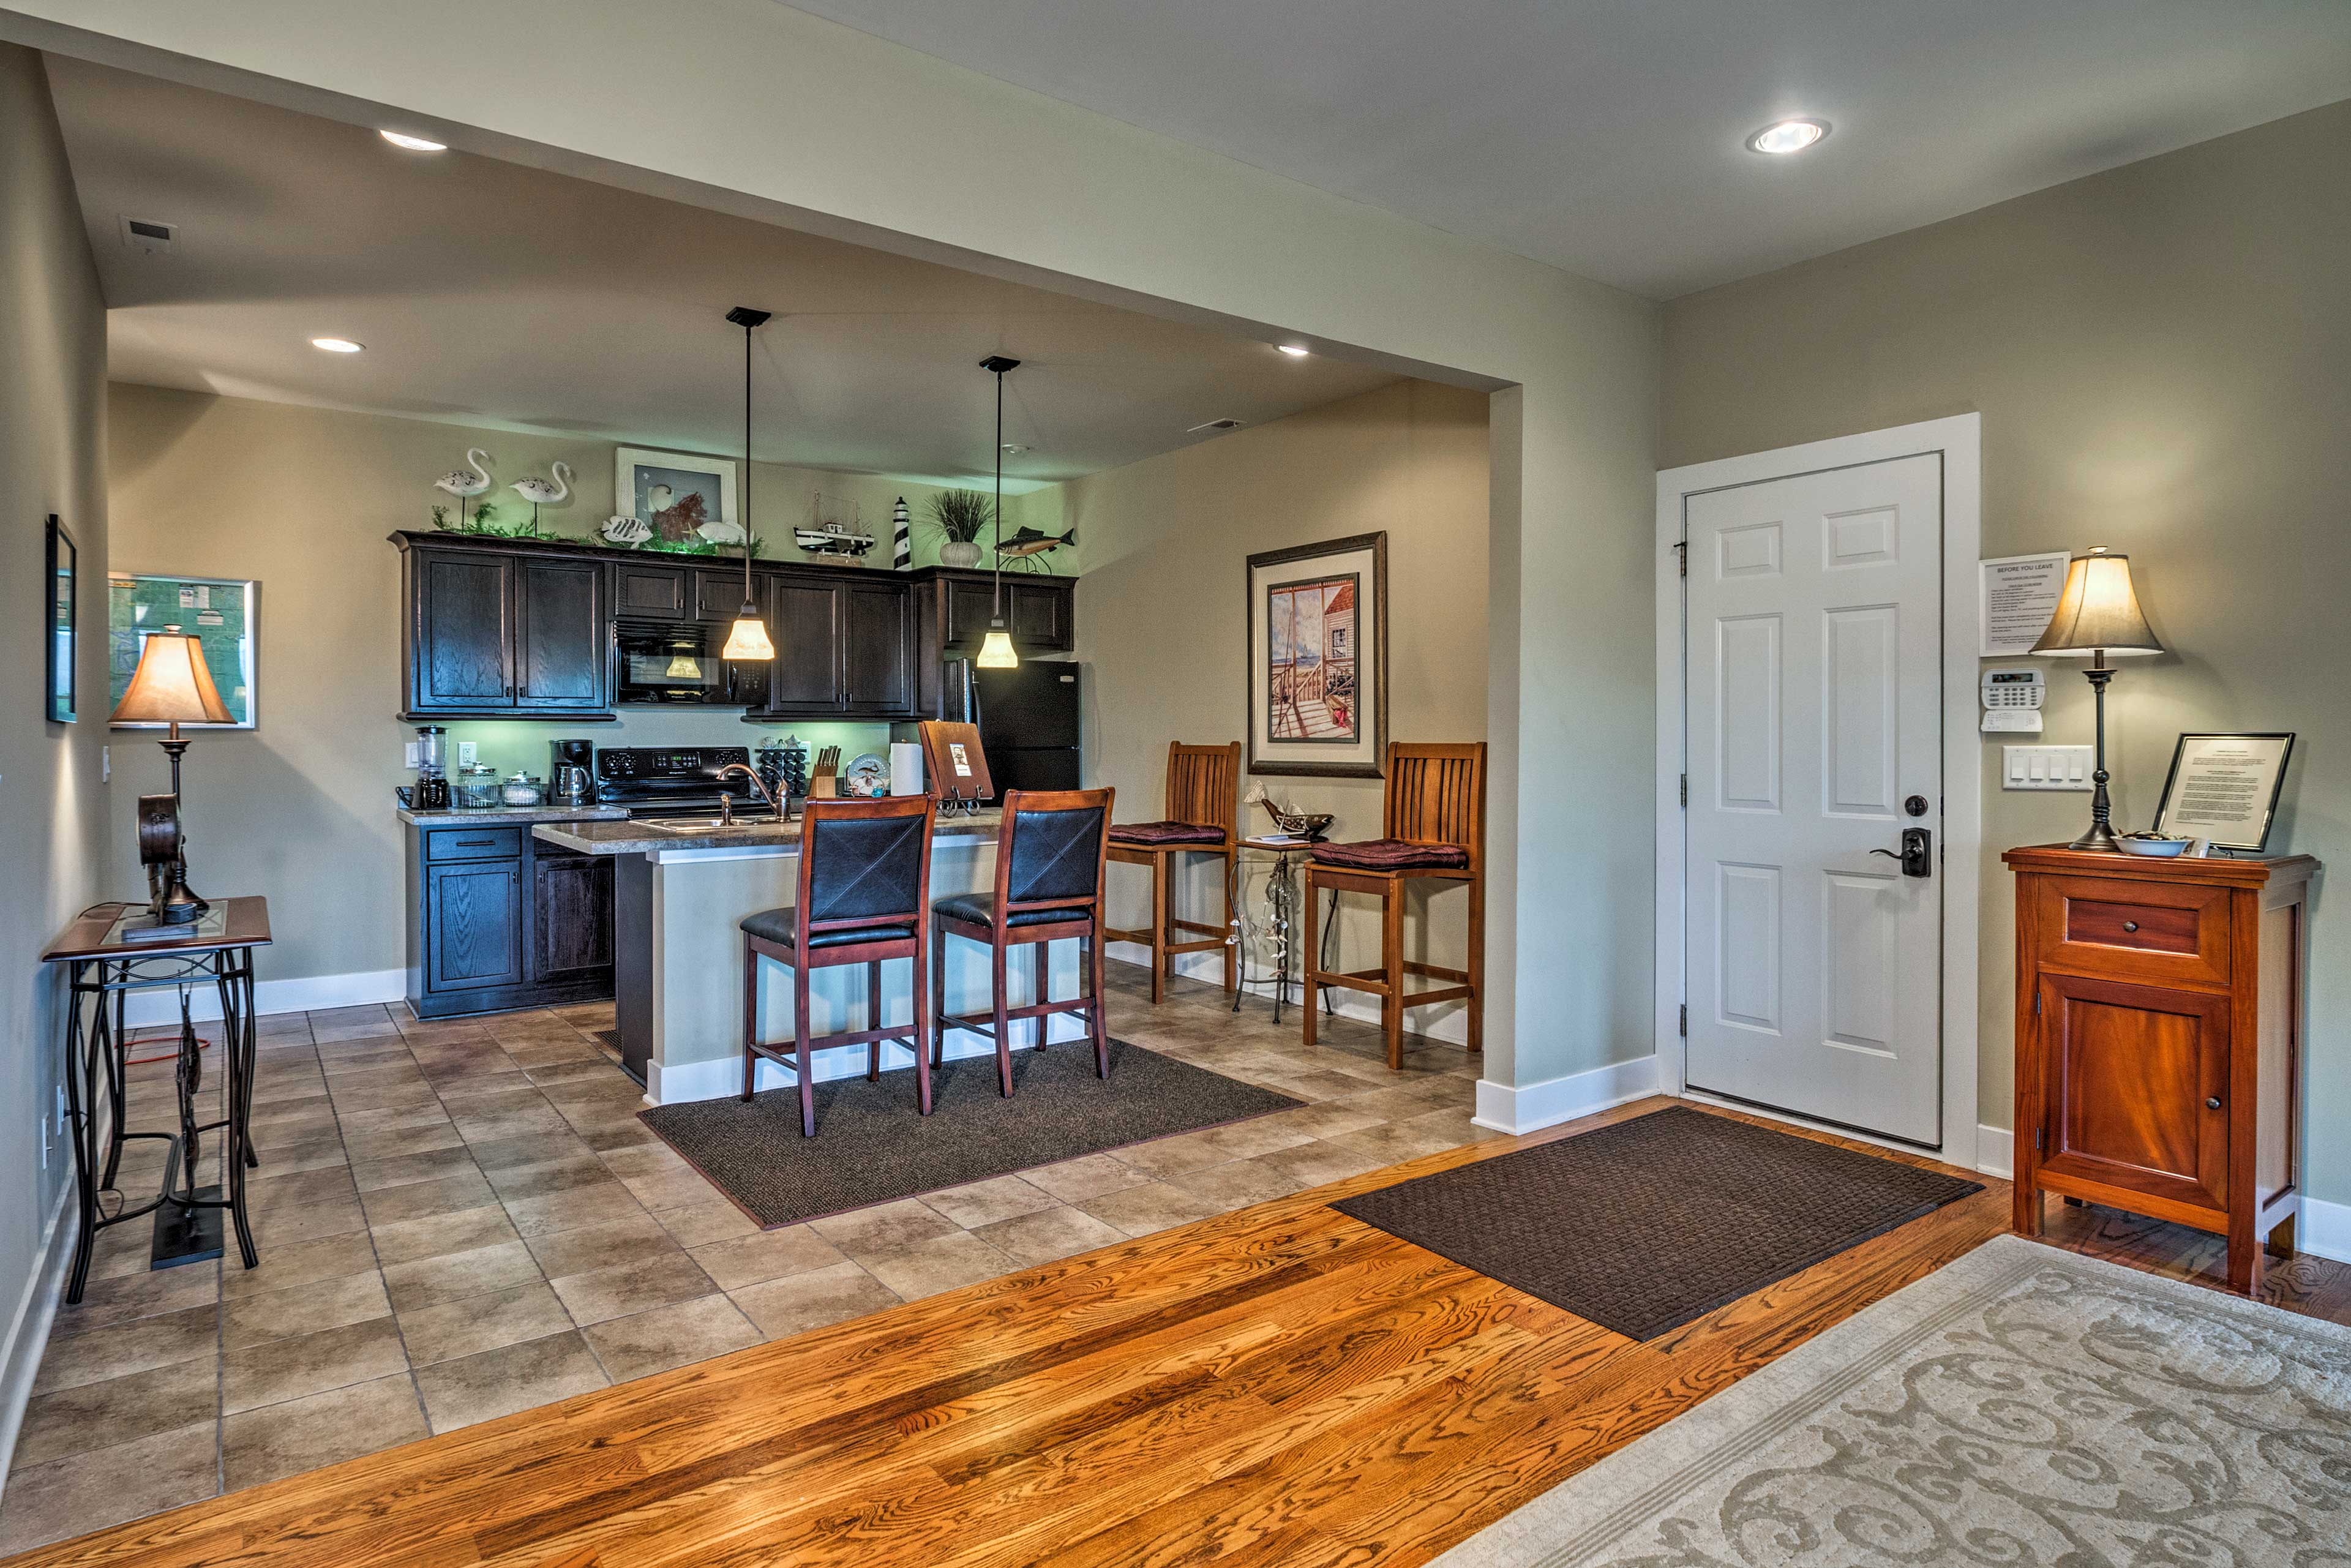 This fully equipped kitchen will make you want to cook up some gourmet meals.